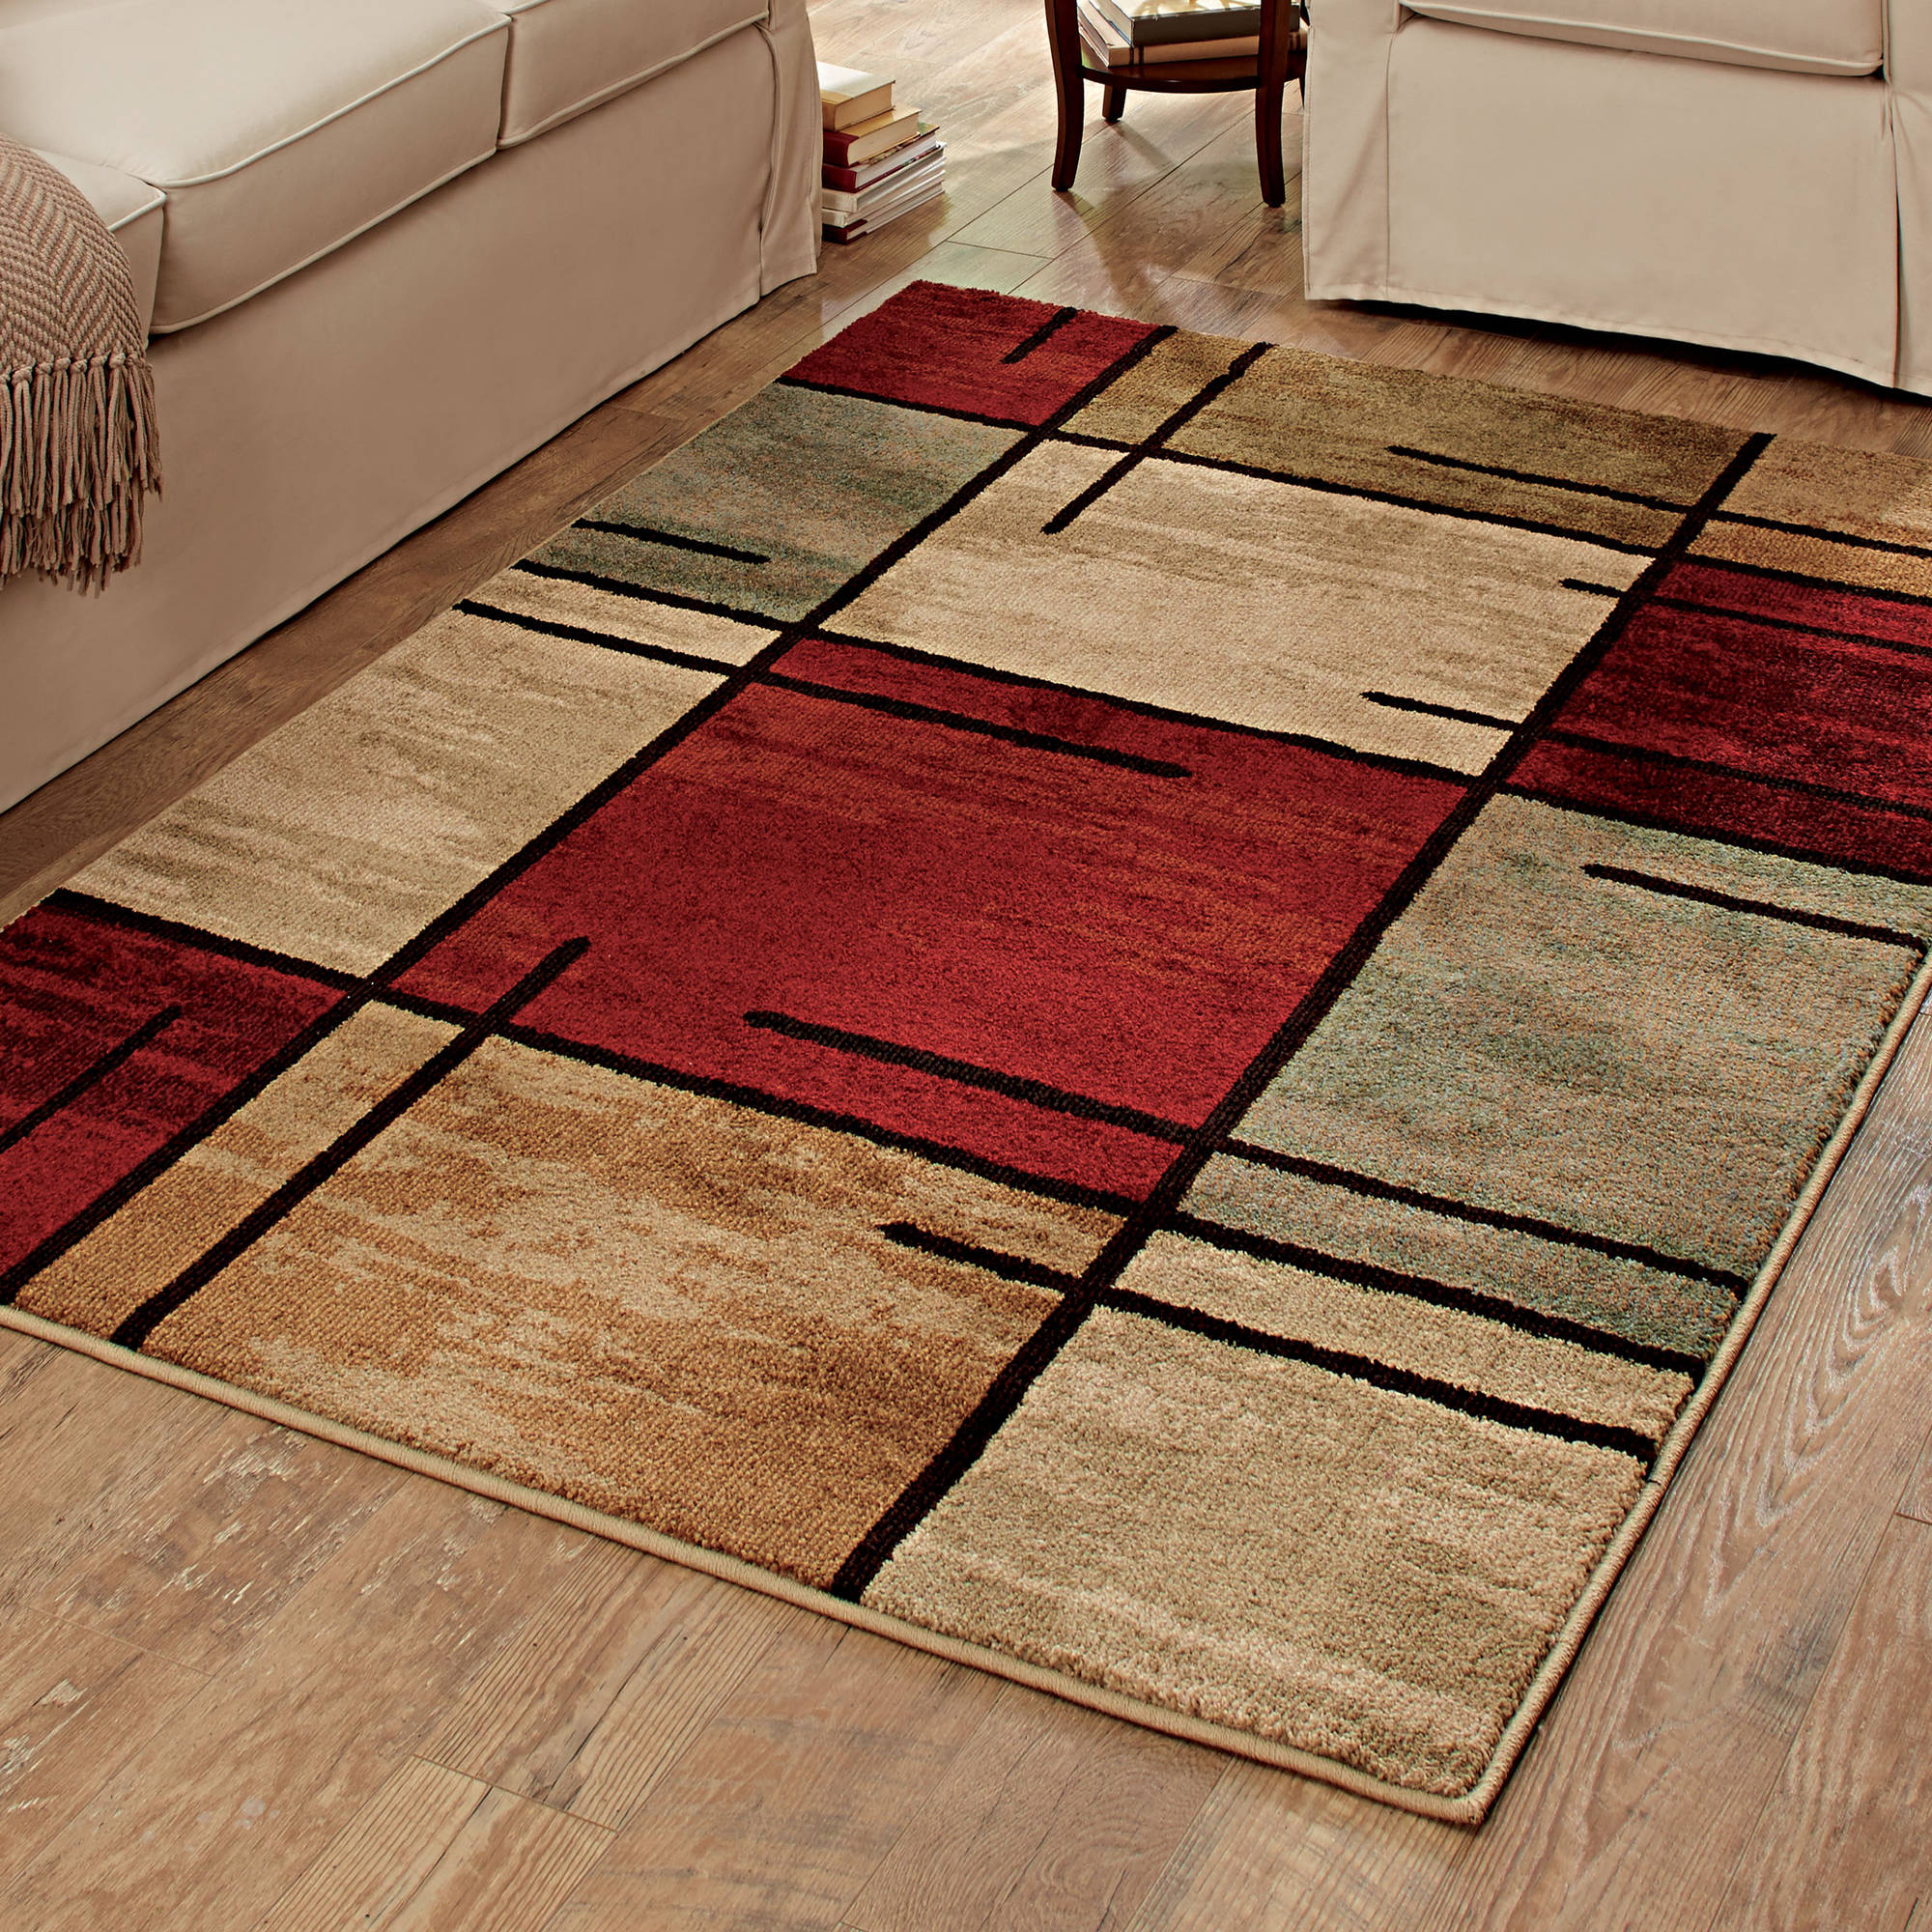 Modular throw rugs better homes and gardens spice grid area rug vtovhao